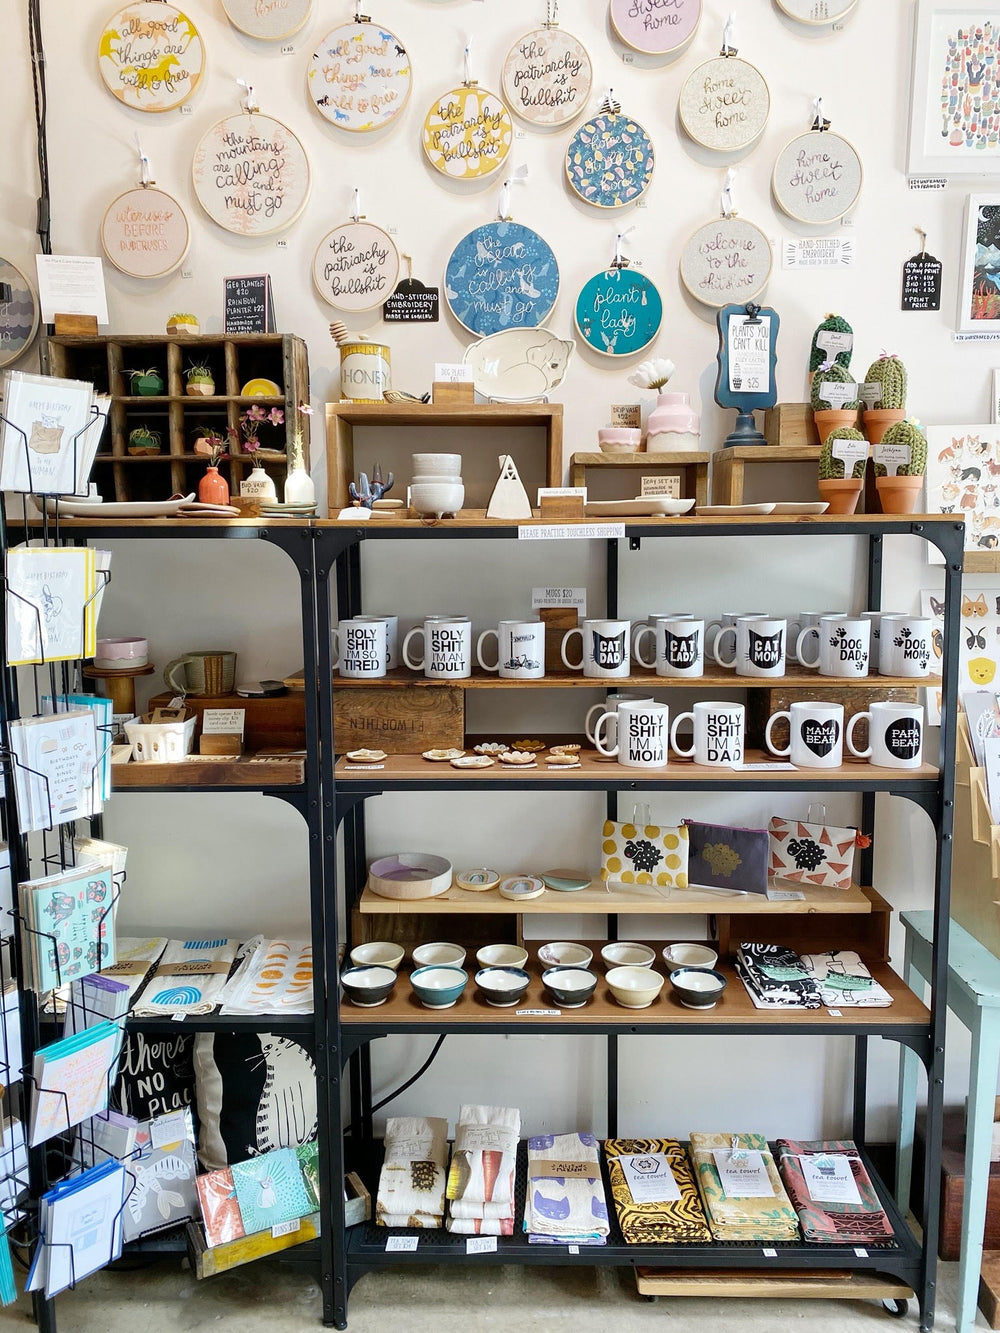 Shelf of handmade goods in gift shop